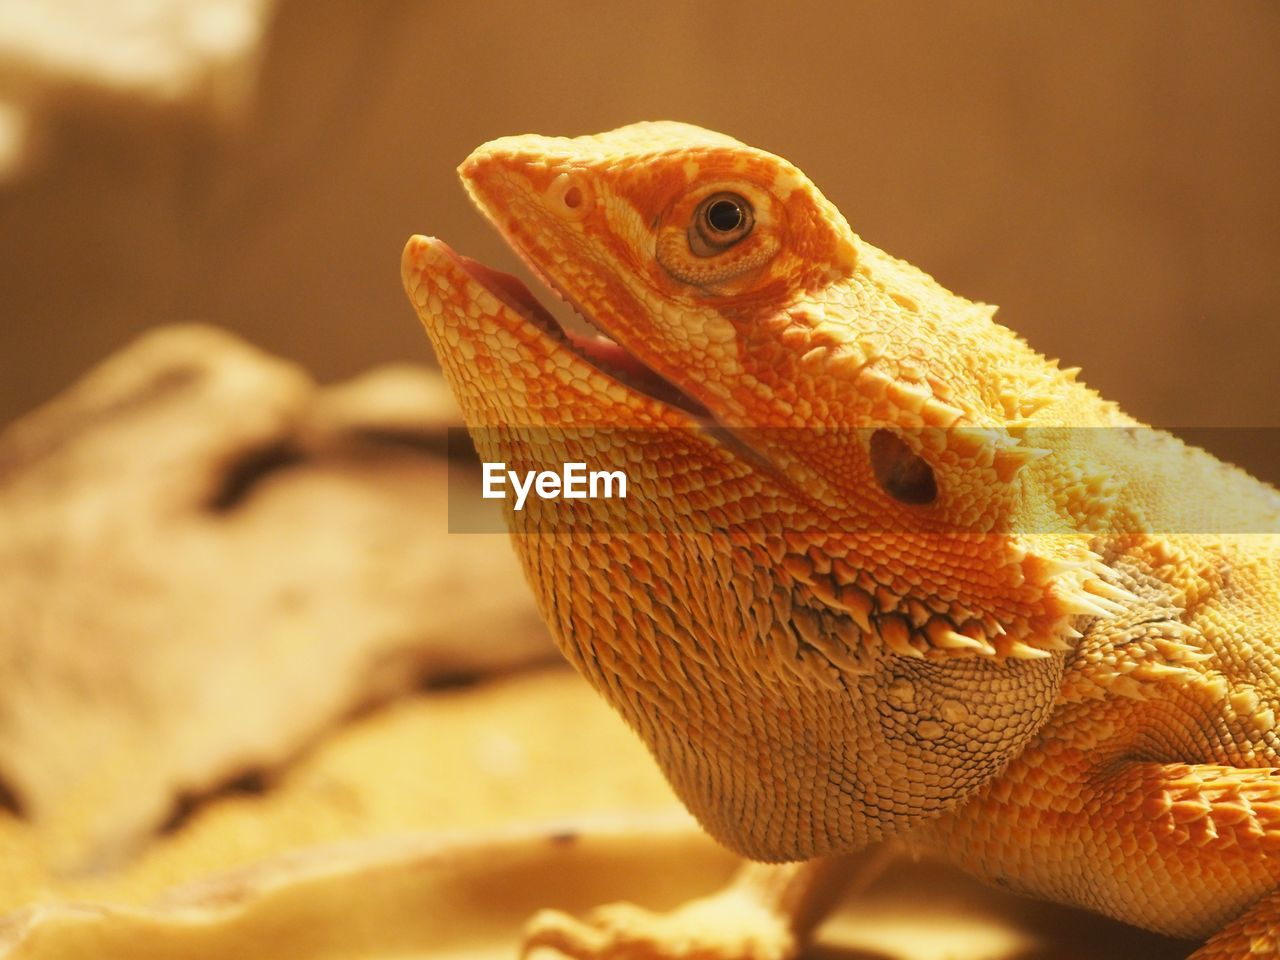 reptile, animal, animal themes, vertebrate, lizard, one animal, close-up, bearded dragon, animal wildlife, animals in the wild, animal body part, no people, animal head, focus on foreground, nature, outdoors, day, selective focus, looking, animal scale, animal eye